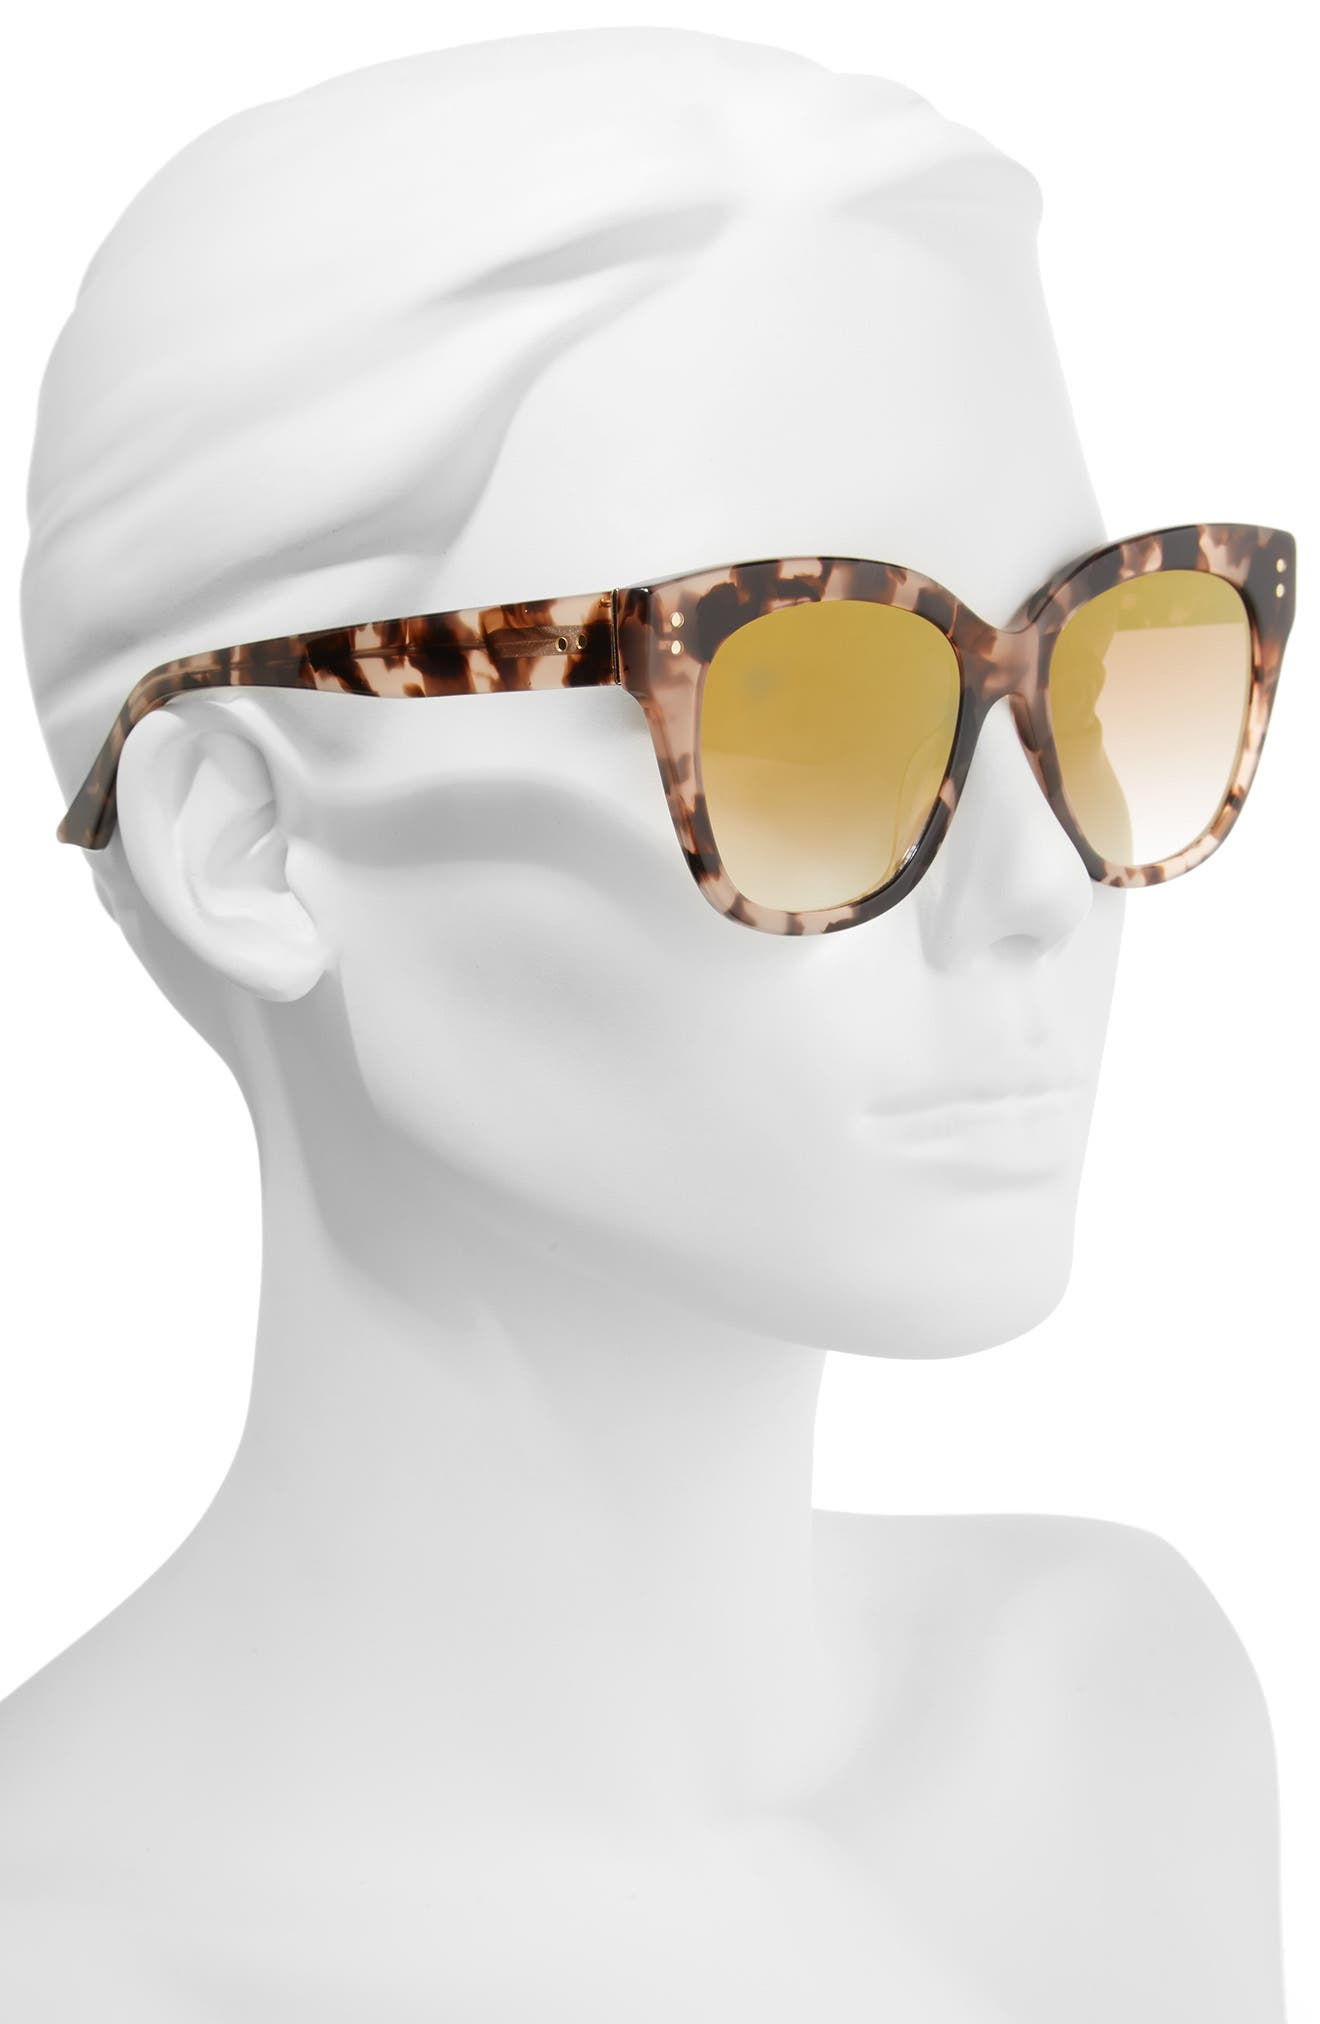 See Saw 55mm Cat Eye Sunglasses,                             Alternate thumbnail 2, color,                             Dogwood- Gold